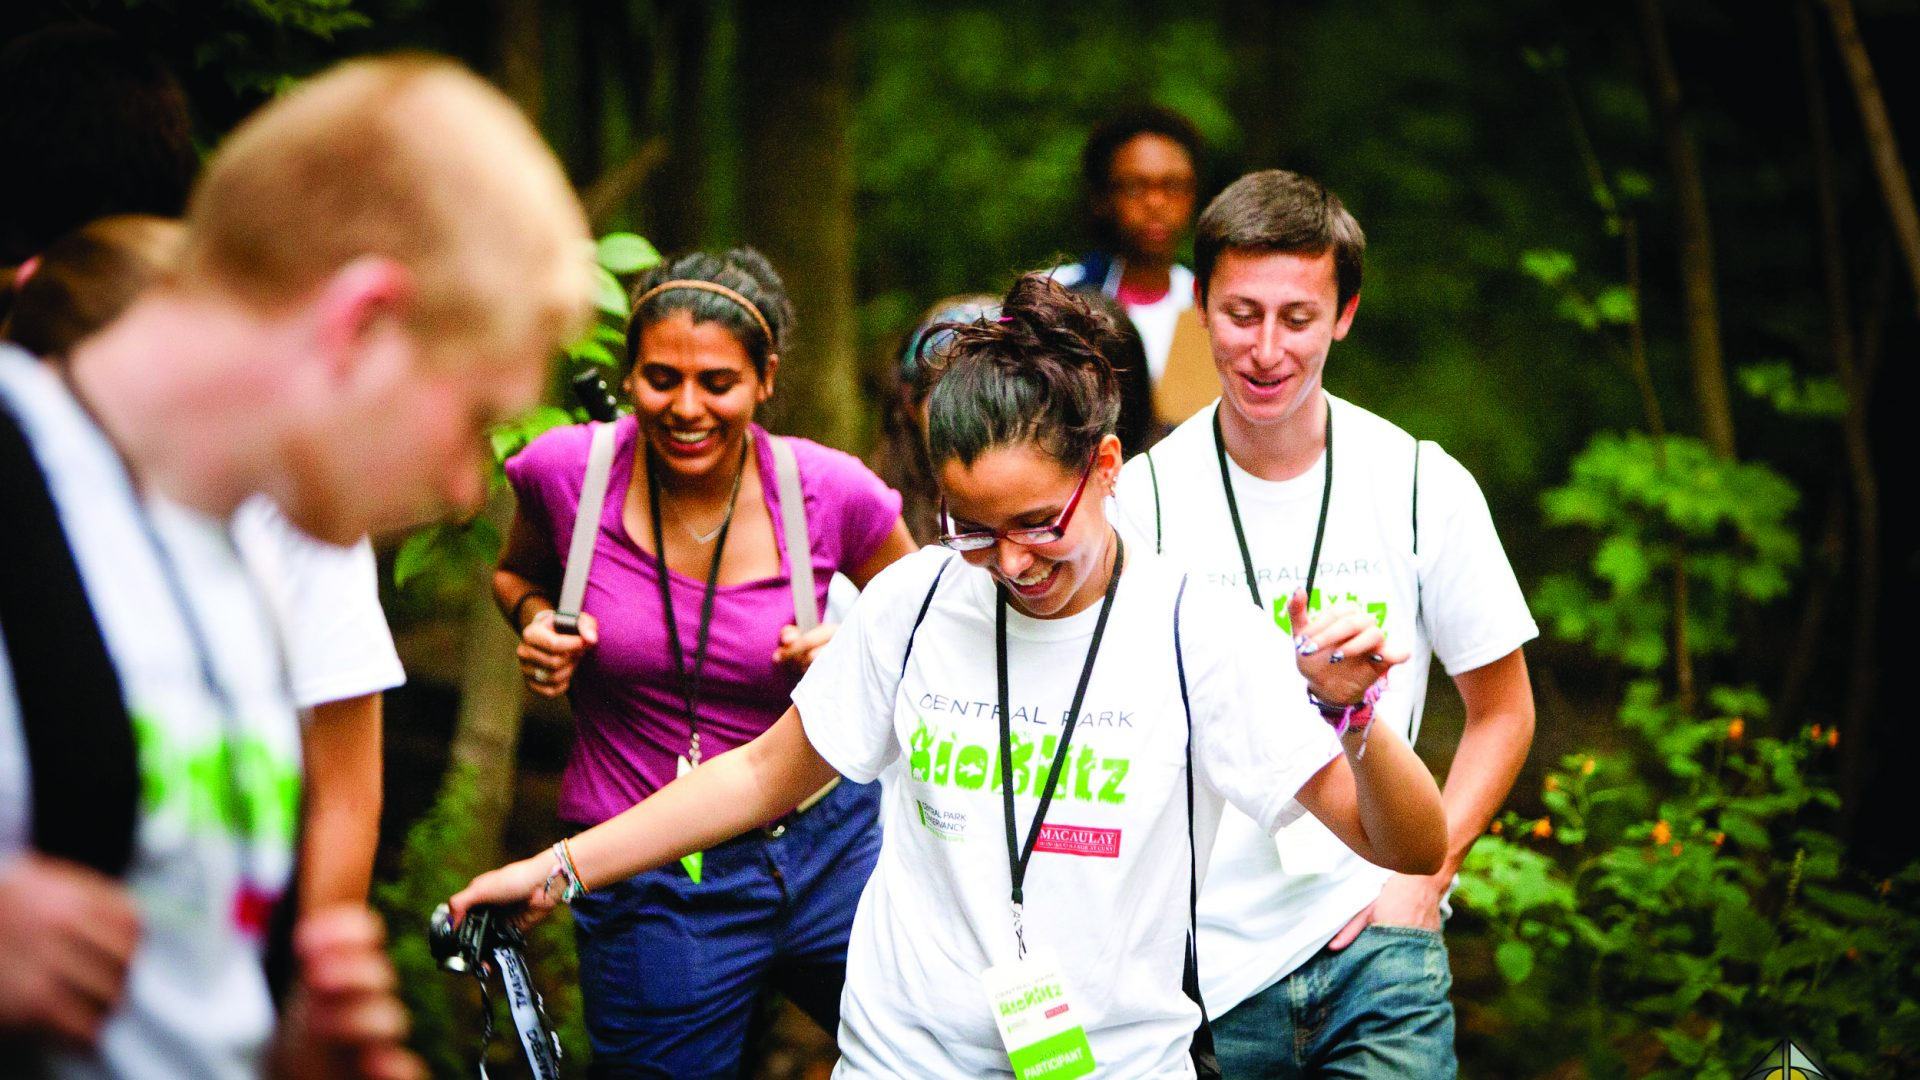 Bioblitz, a Macaulay seminar event, at Central Park